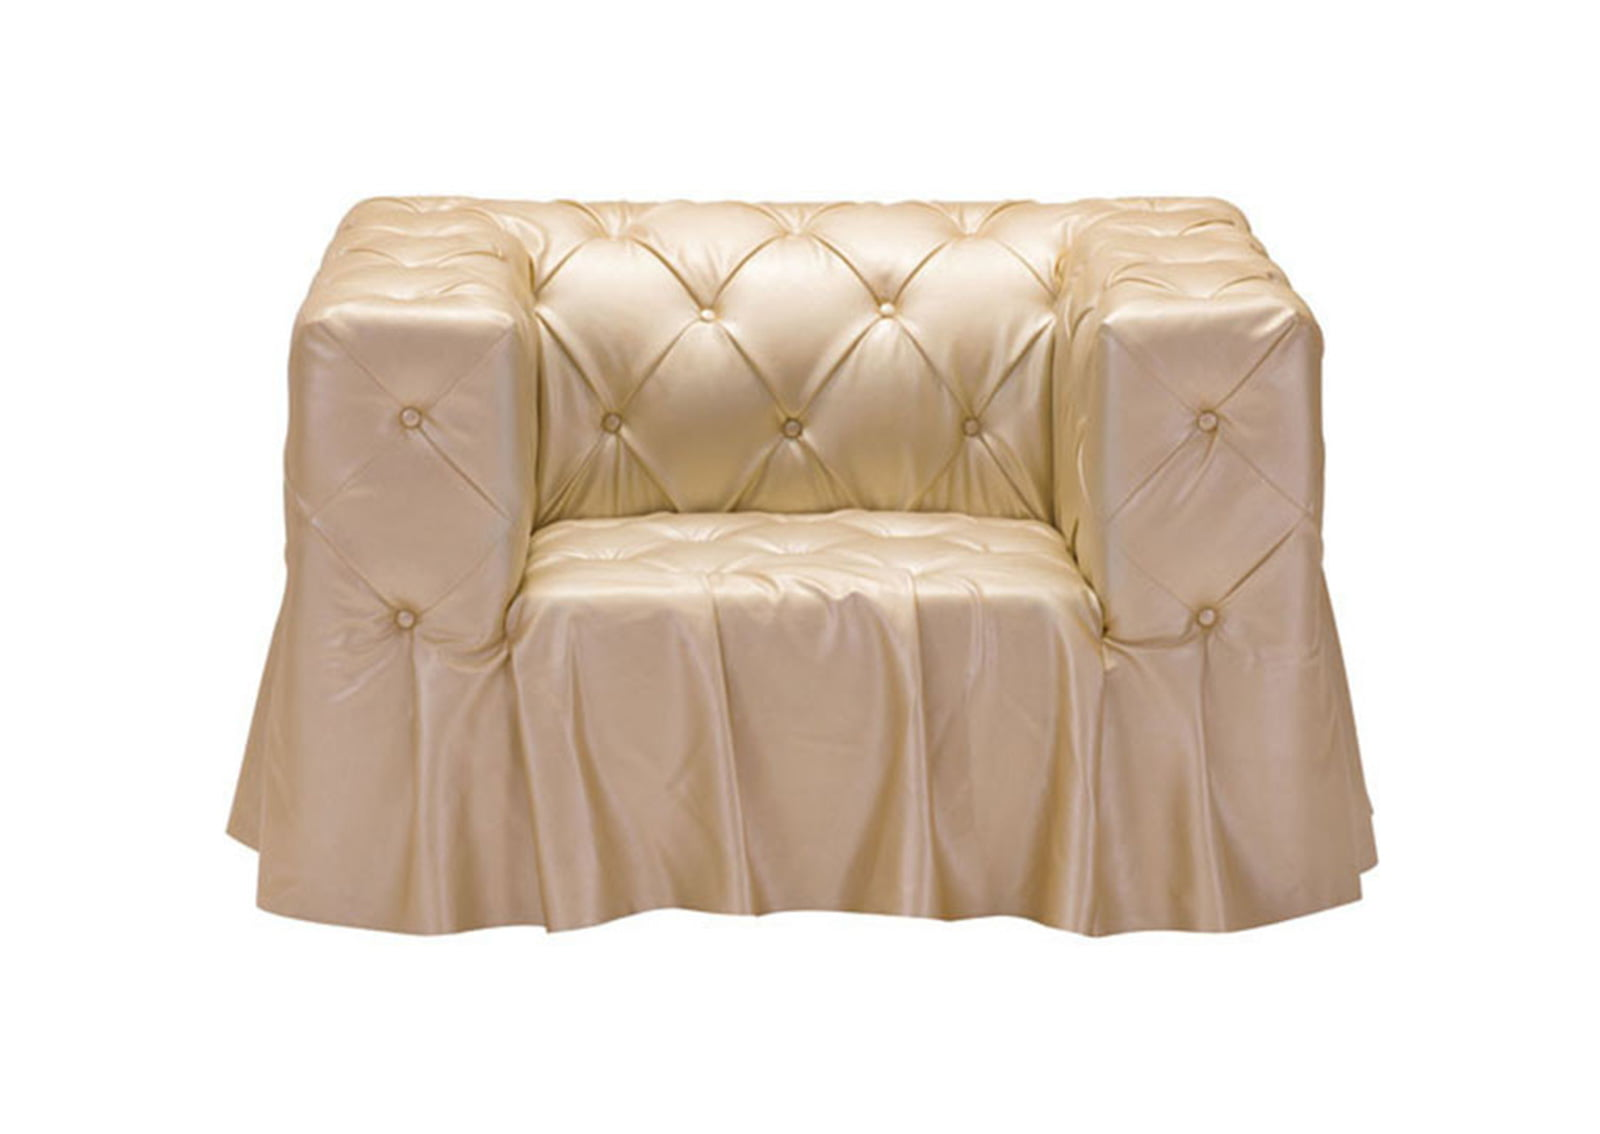 gold chair covers on sale wooden rocking chairs outdoor connoisseur arm furnishplus